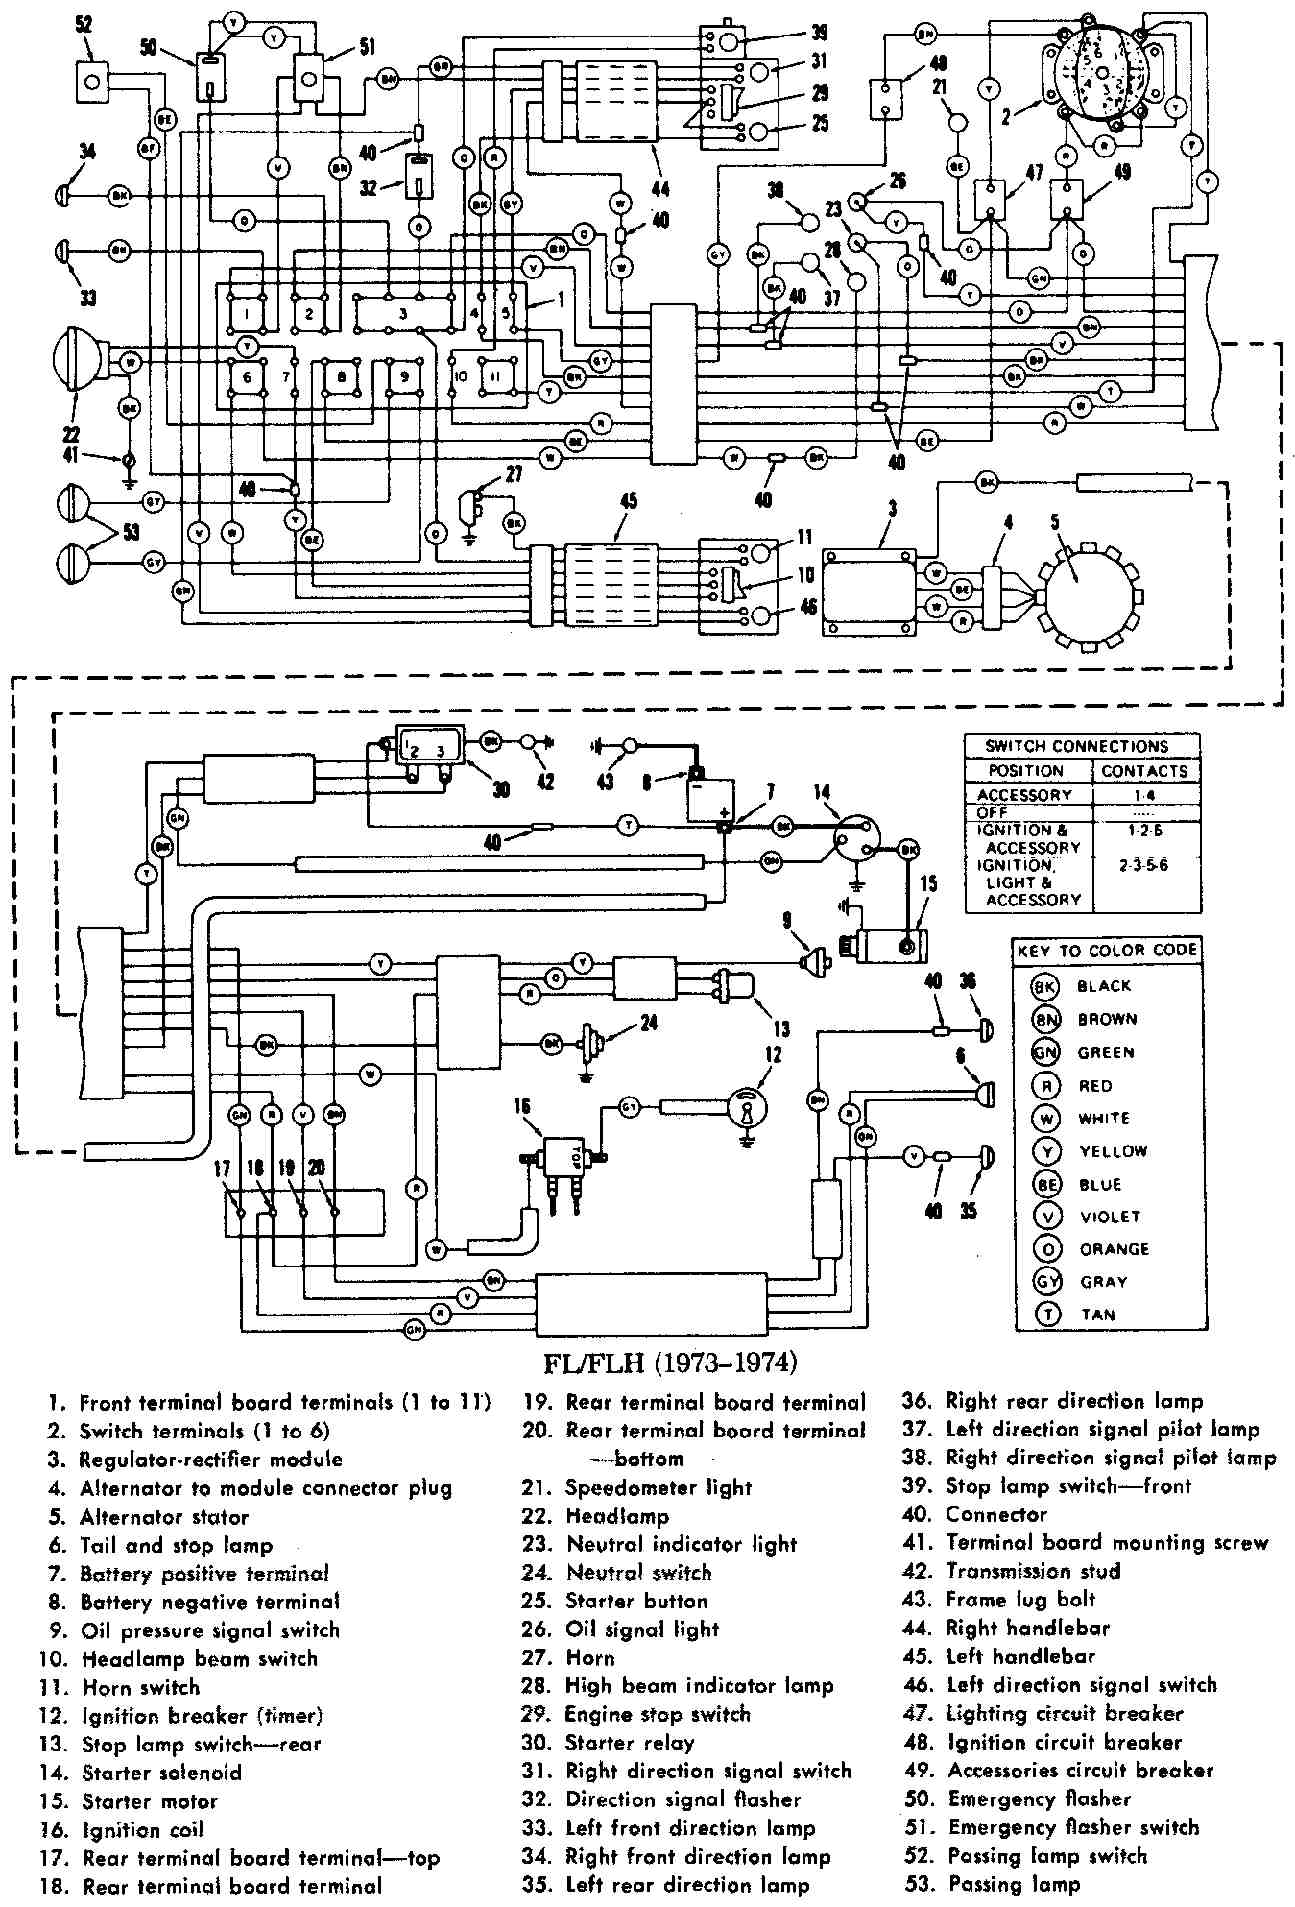 1972 harley flh wiring diagram z3 wiring library diagram1972 harley flh wiring diagram wiring diagram third level 1972 harley flh colors available 1972 harley flh wiring diagram